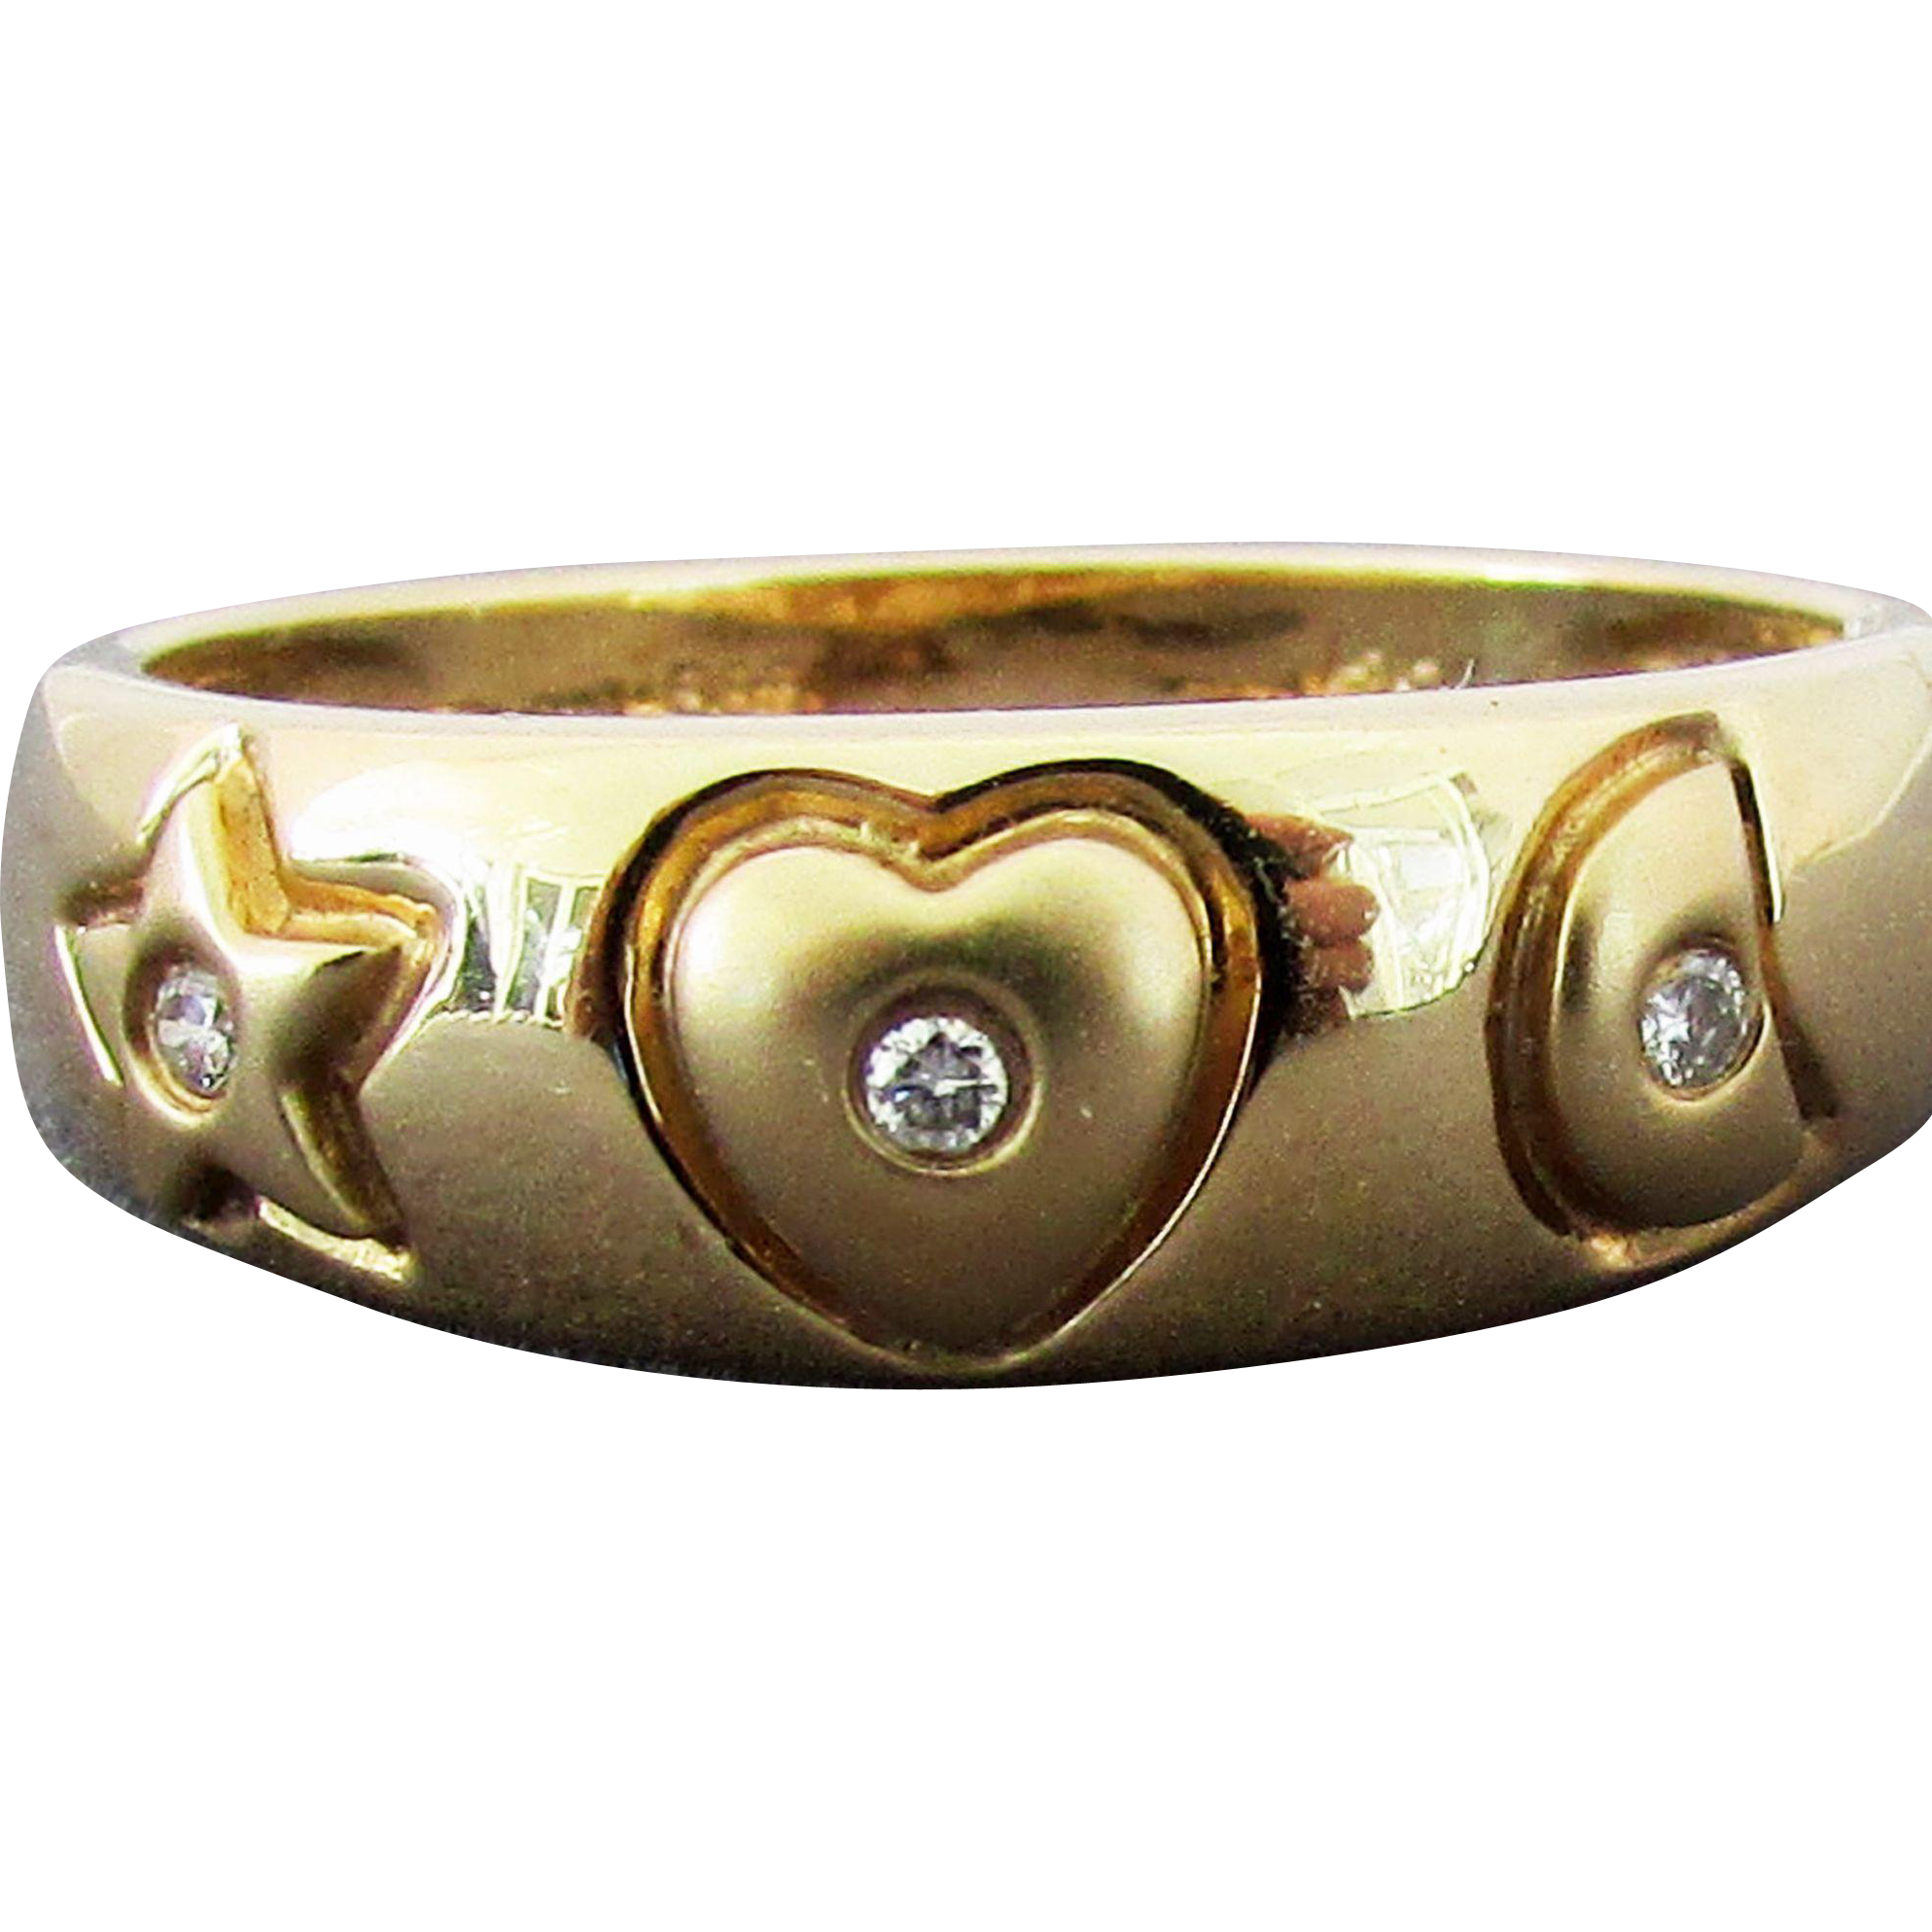 14K YG Band Ring with Star, Heart & Crescent Moon, Size 8 1/4